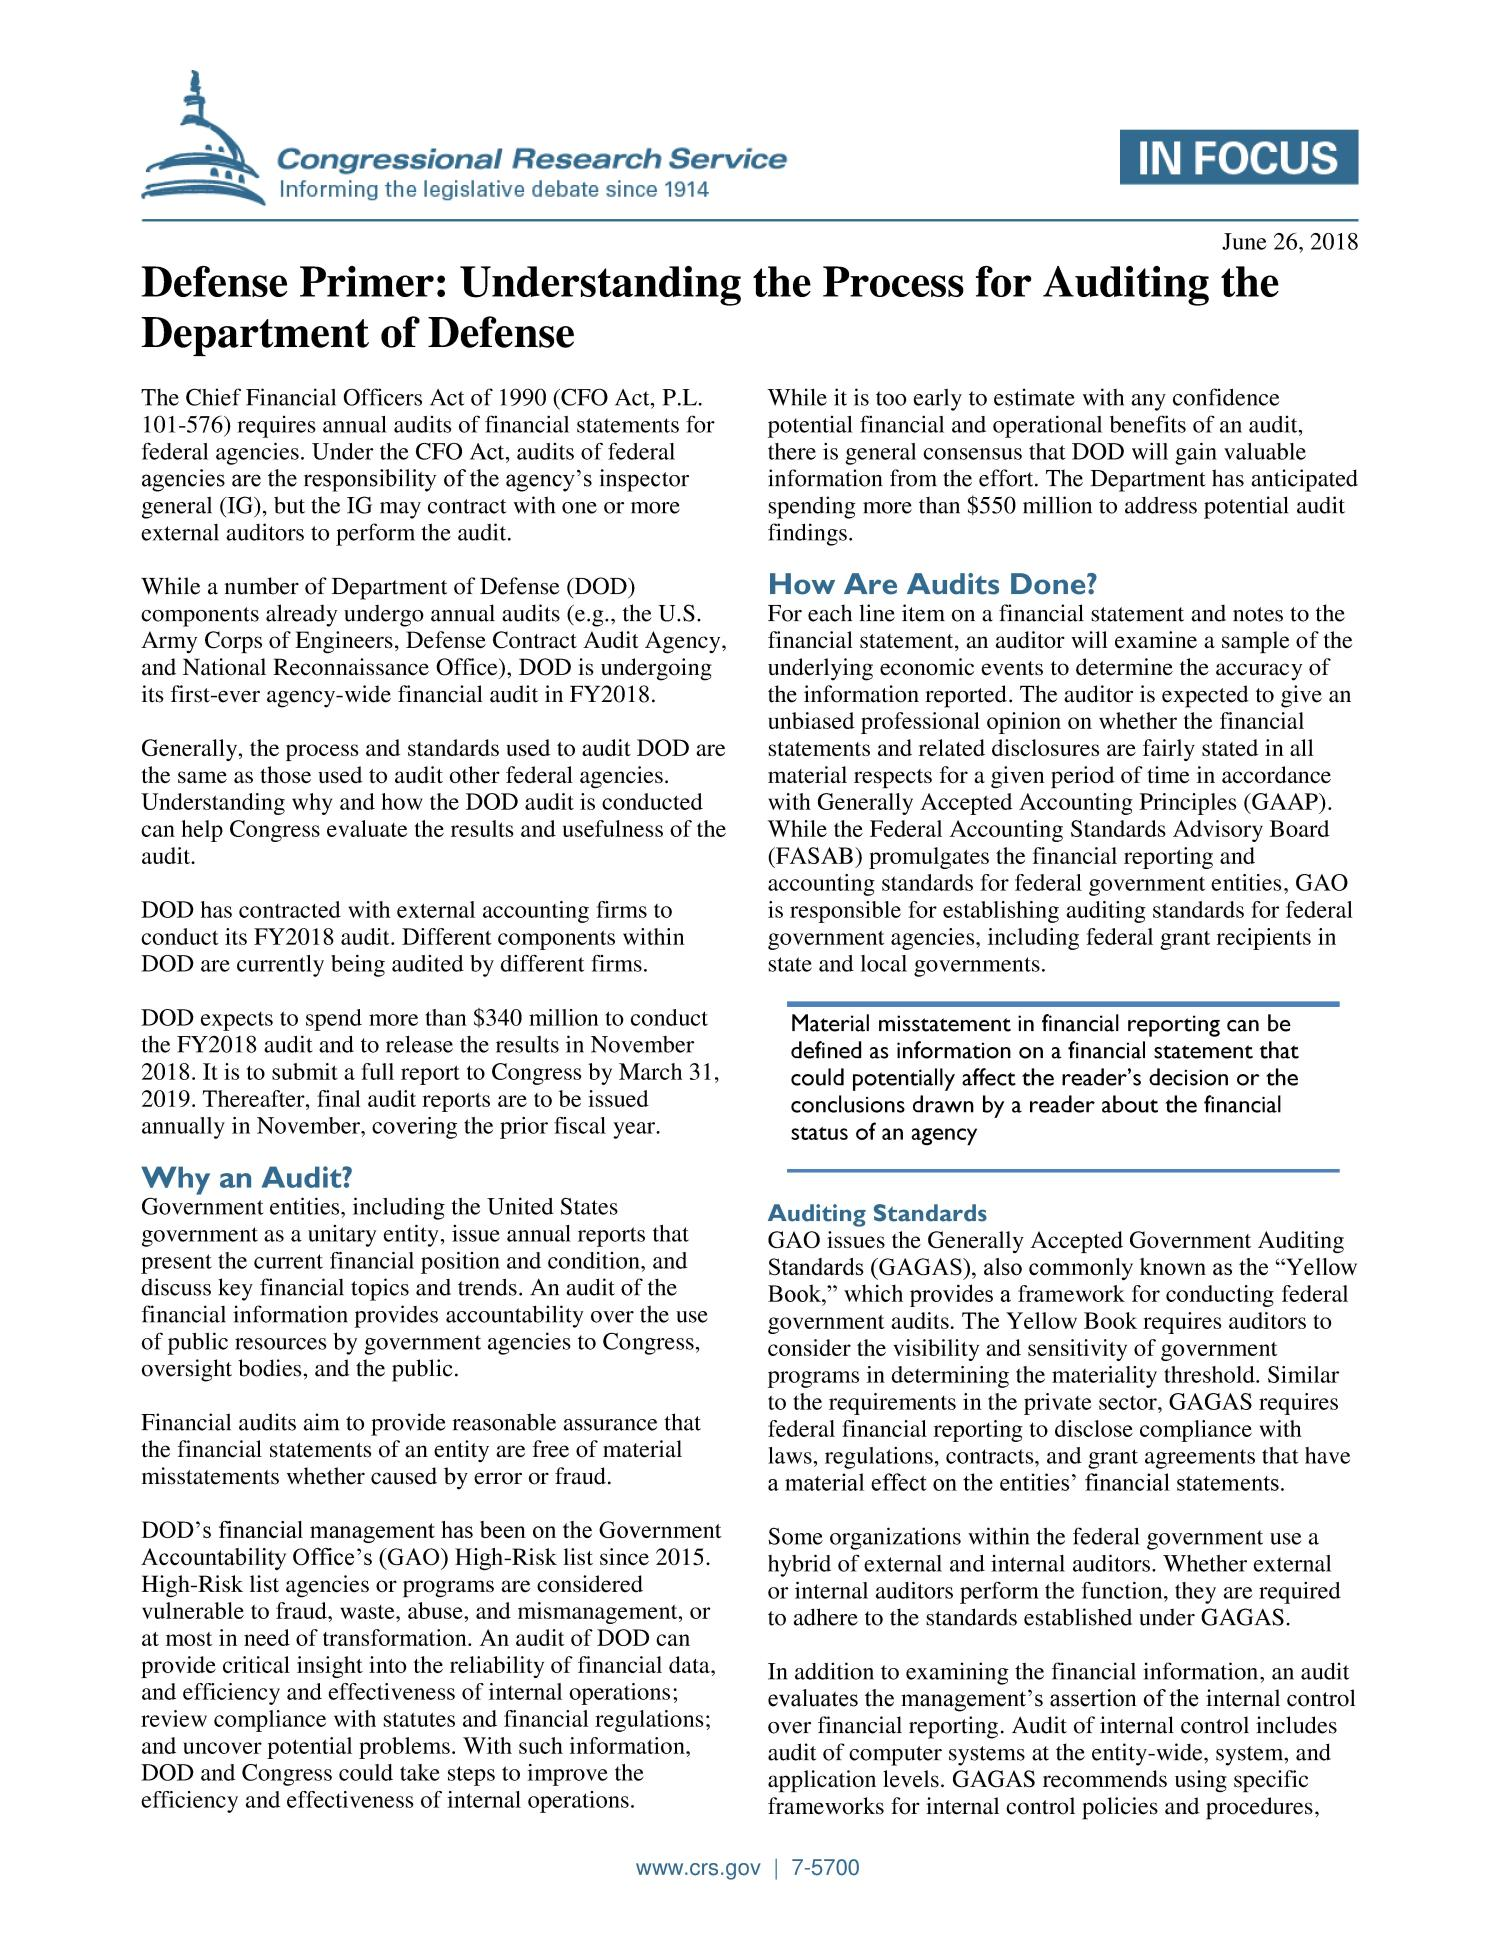 Defense Primer: Understanding the Process for Auditing the Department of Defense                                                                                                      [Sequence #]: 1 of 2